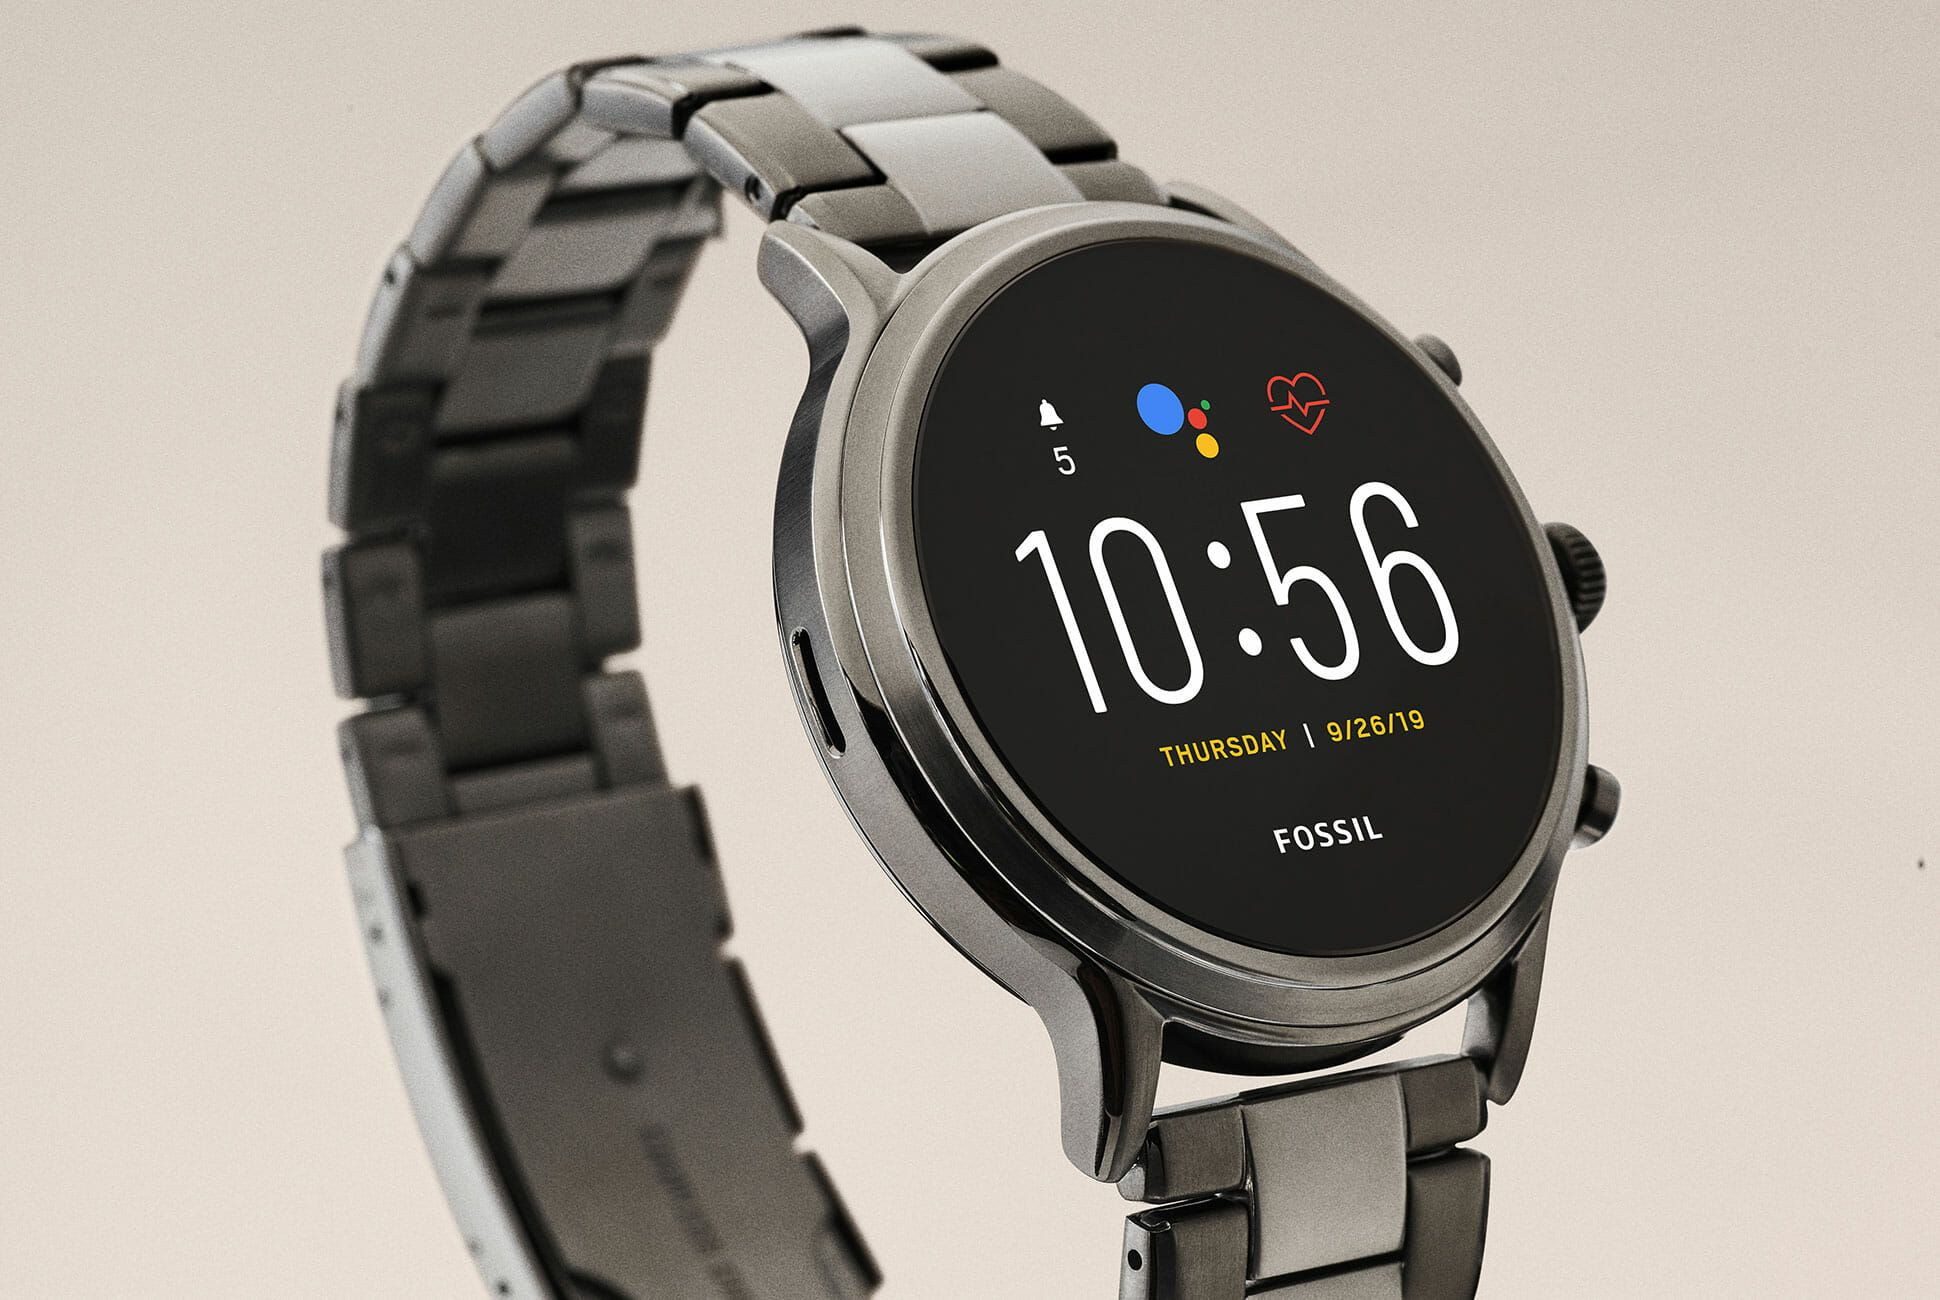 There's a Good Reason for iPhone Owners to Get This Smartwatch